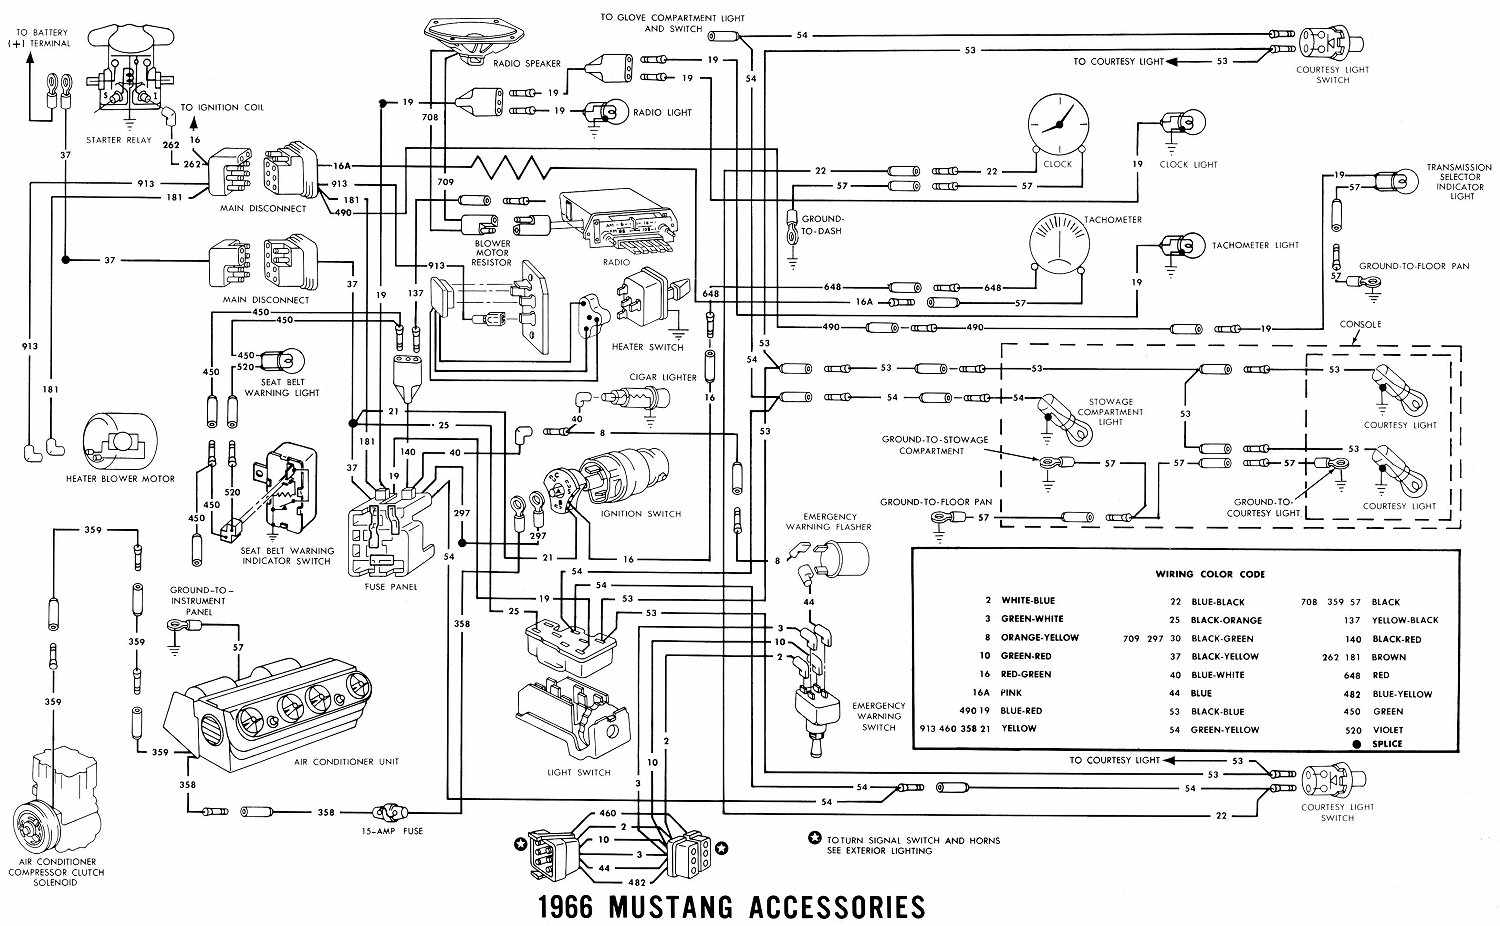 89 mustang gt harness diagram wiring diagram schematic